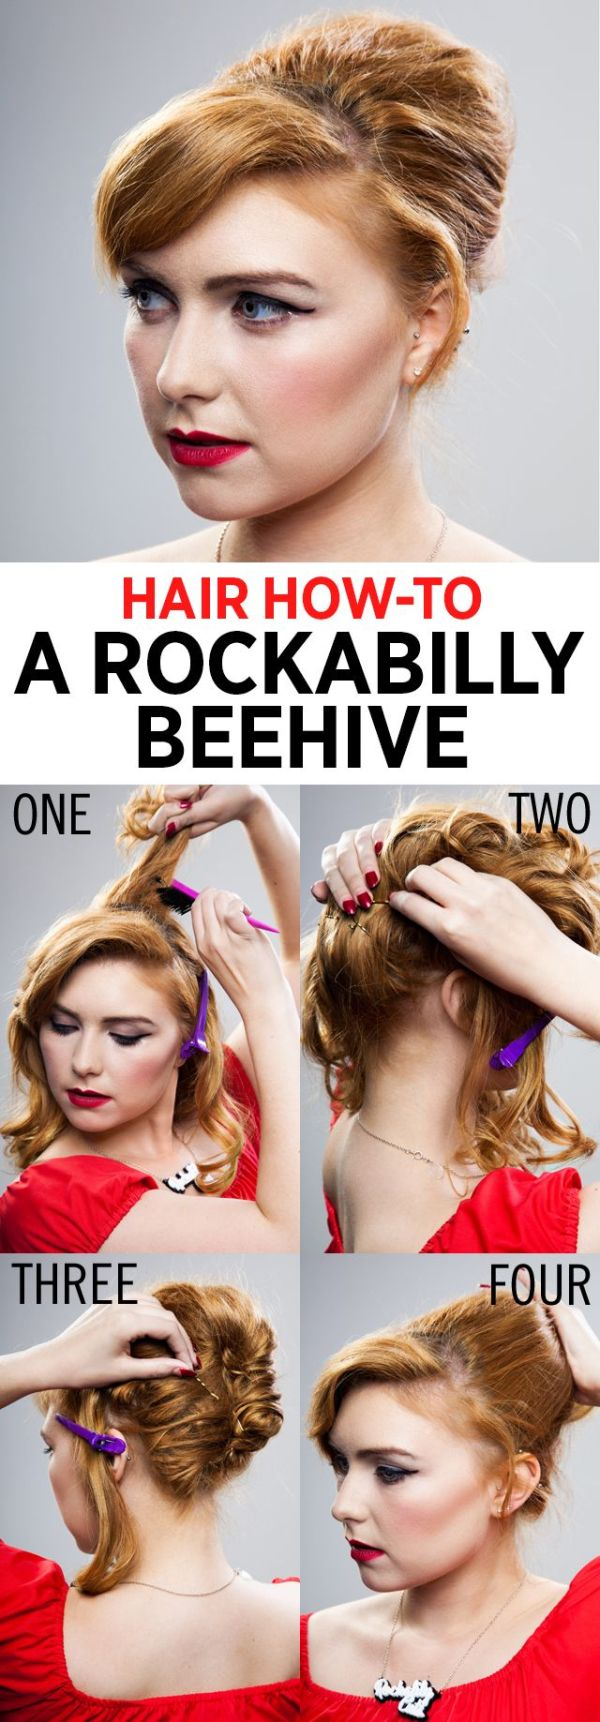 30 Easy Rockabilly Hairstyles Tutorials Hairstyles Ideas Walk